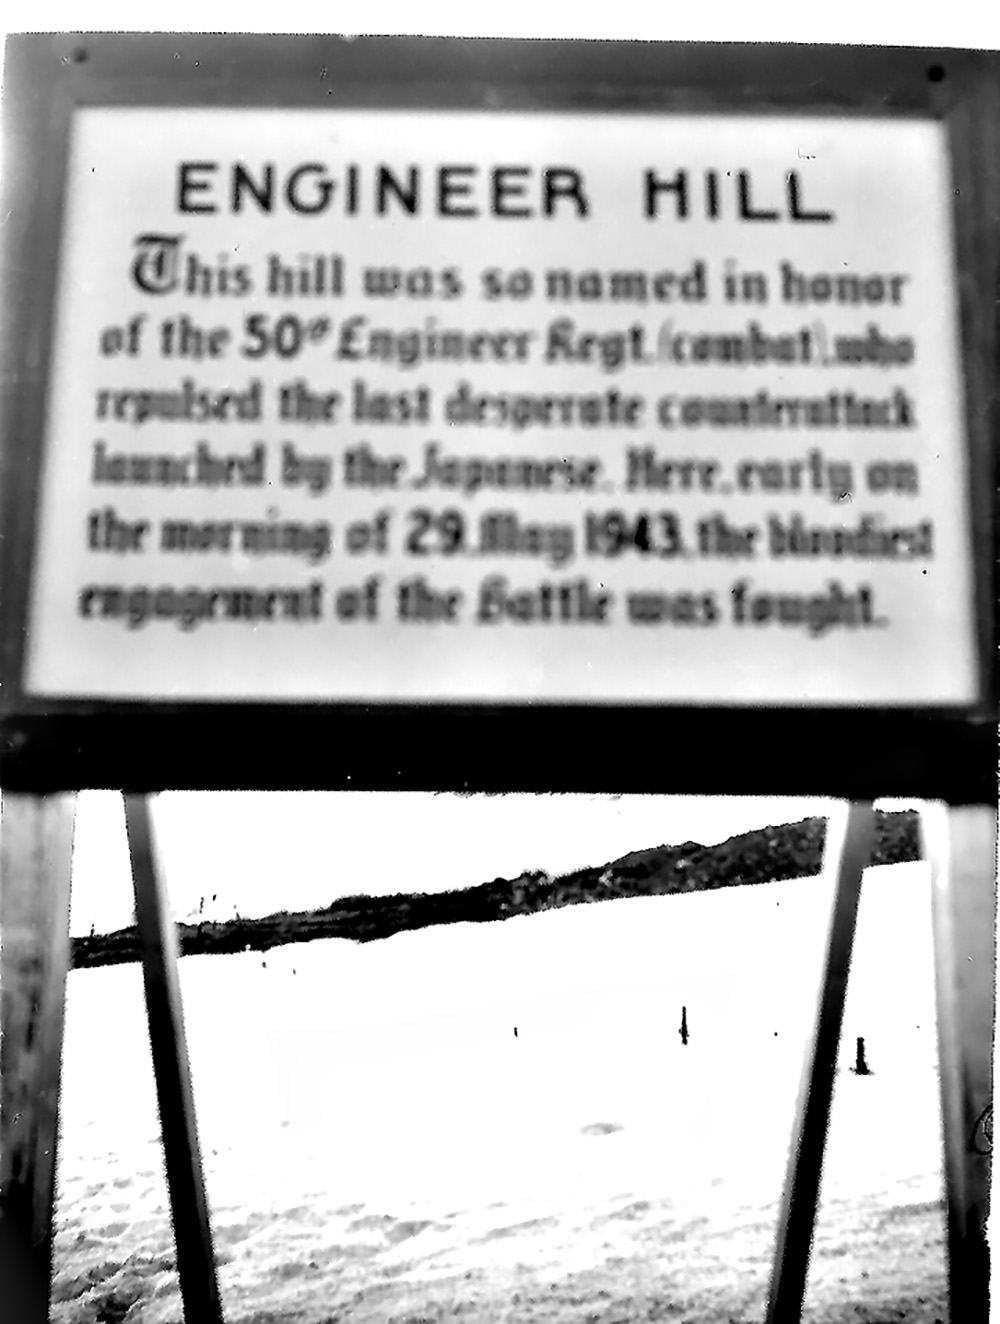 Engineer Hill